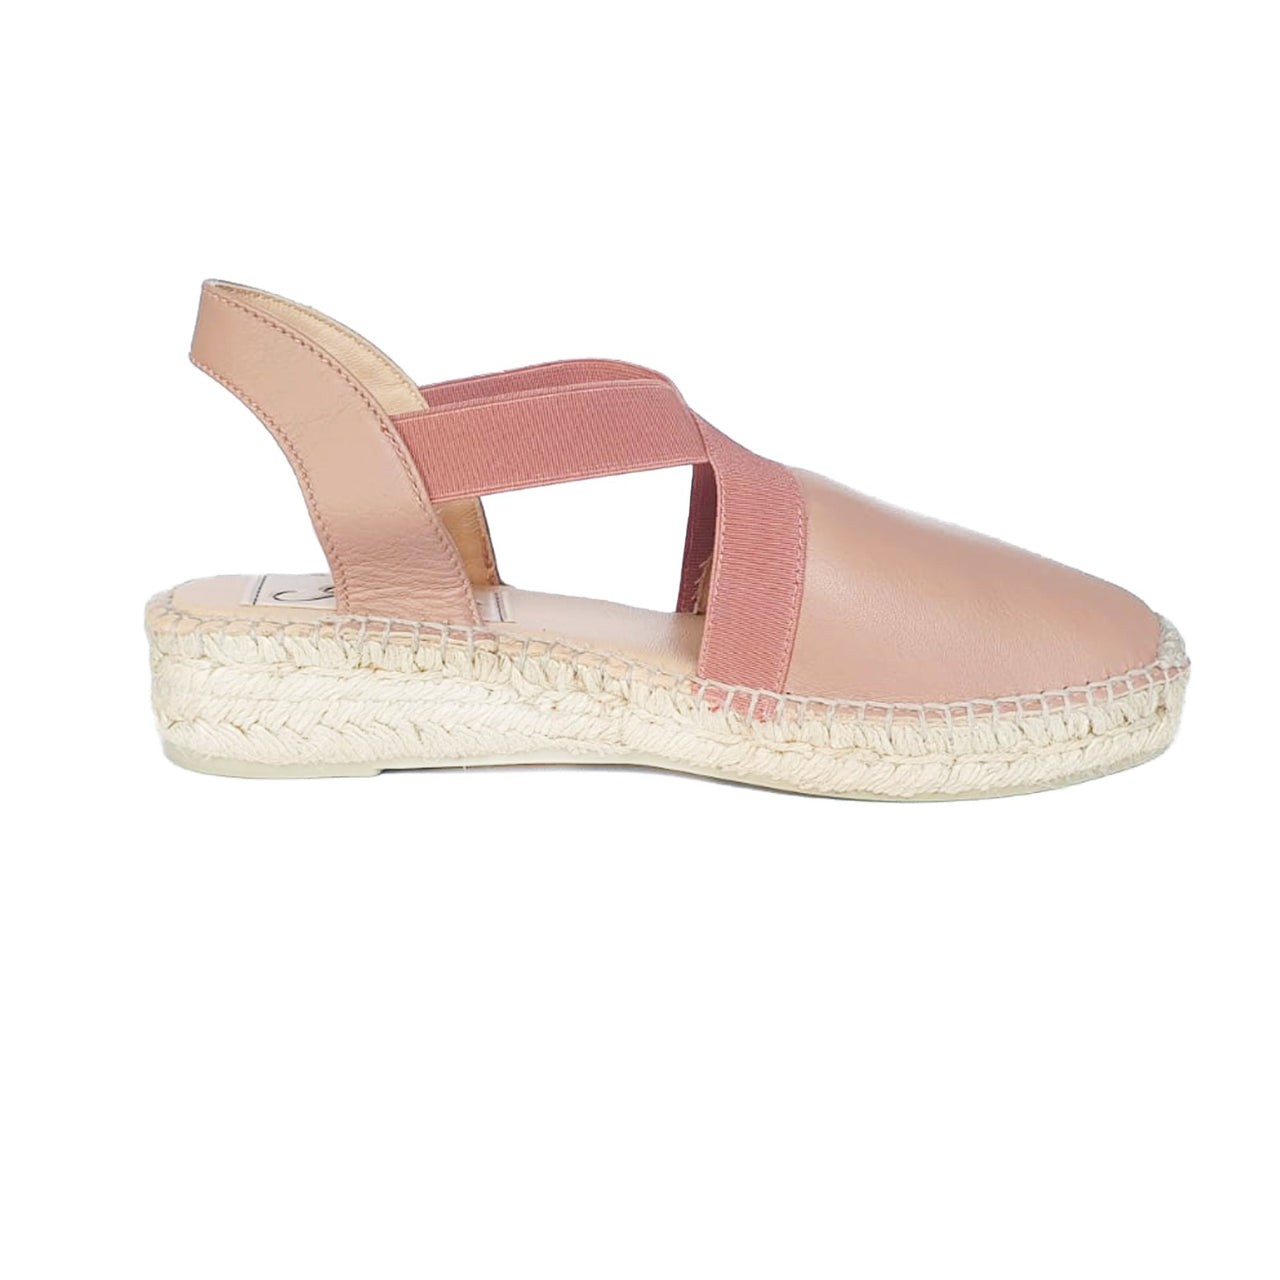 PAOLA Blush espadrilles - Badt and Co - singapore